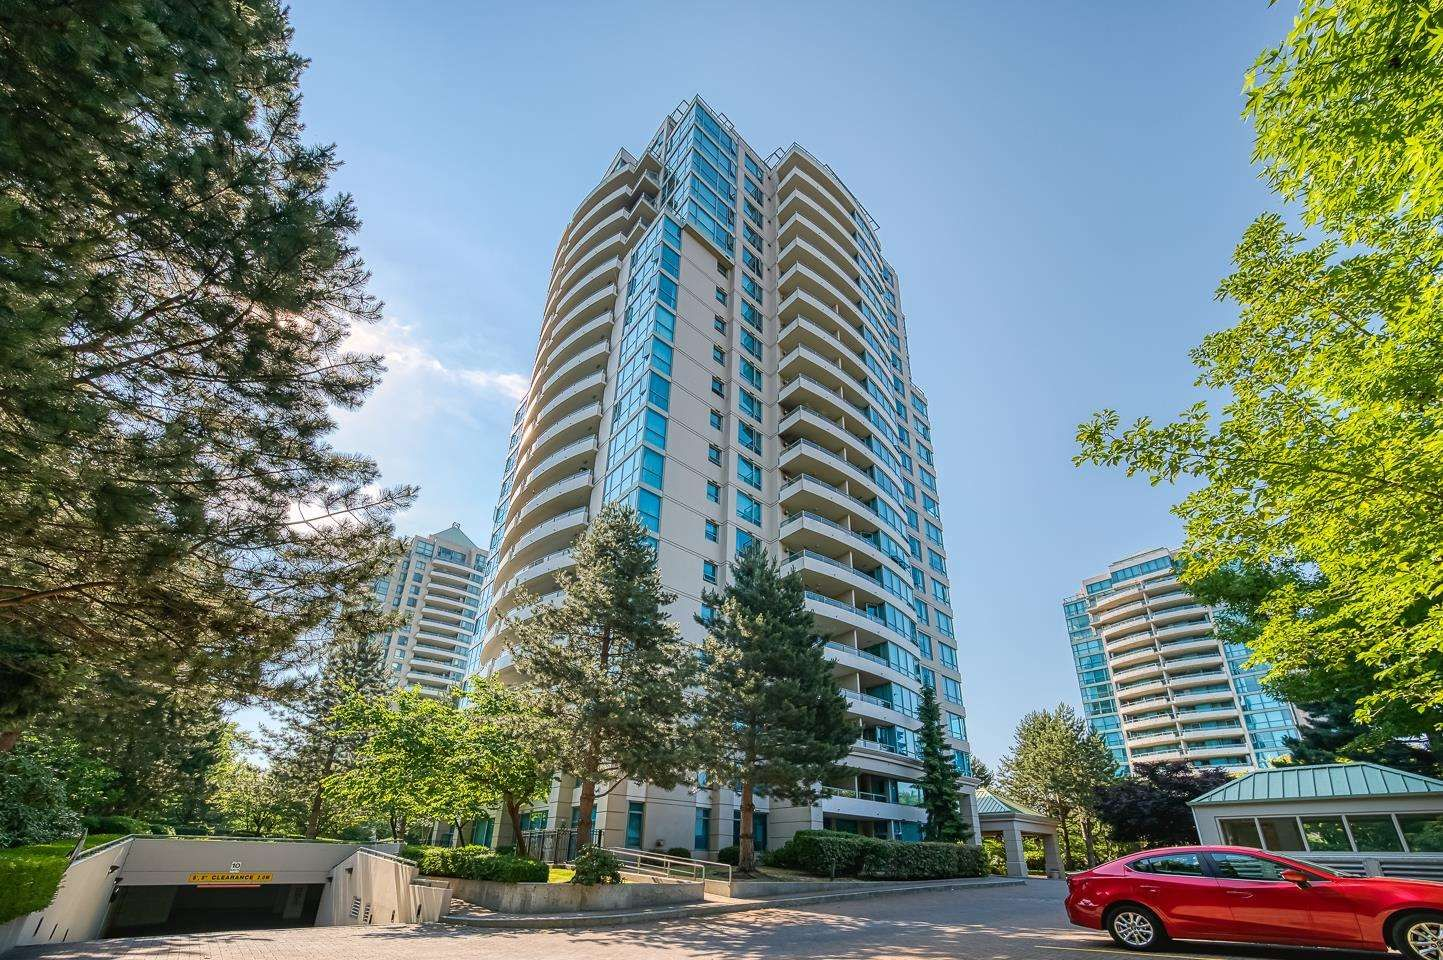 Main Photo: 1202 6611 SOUTHOAKS Crescent in Burnaby: Highgate Condo for sale (Burnaby South)  : MLS®# R2598411